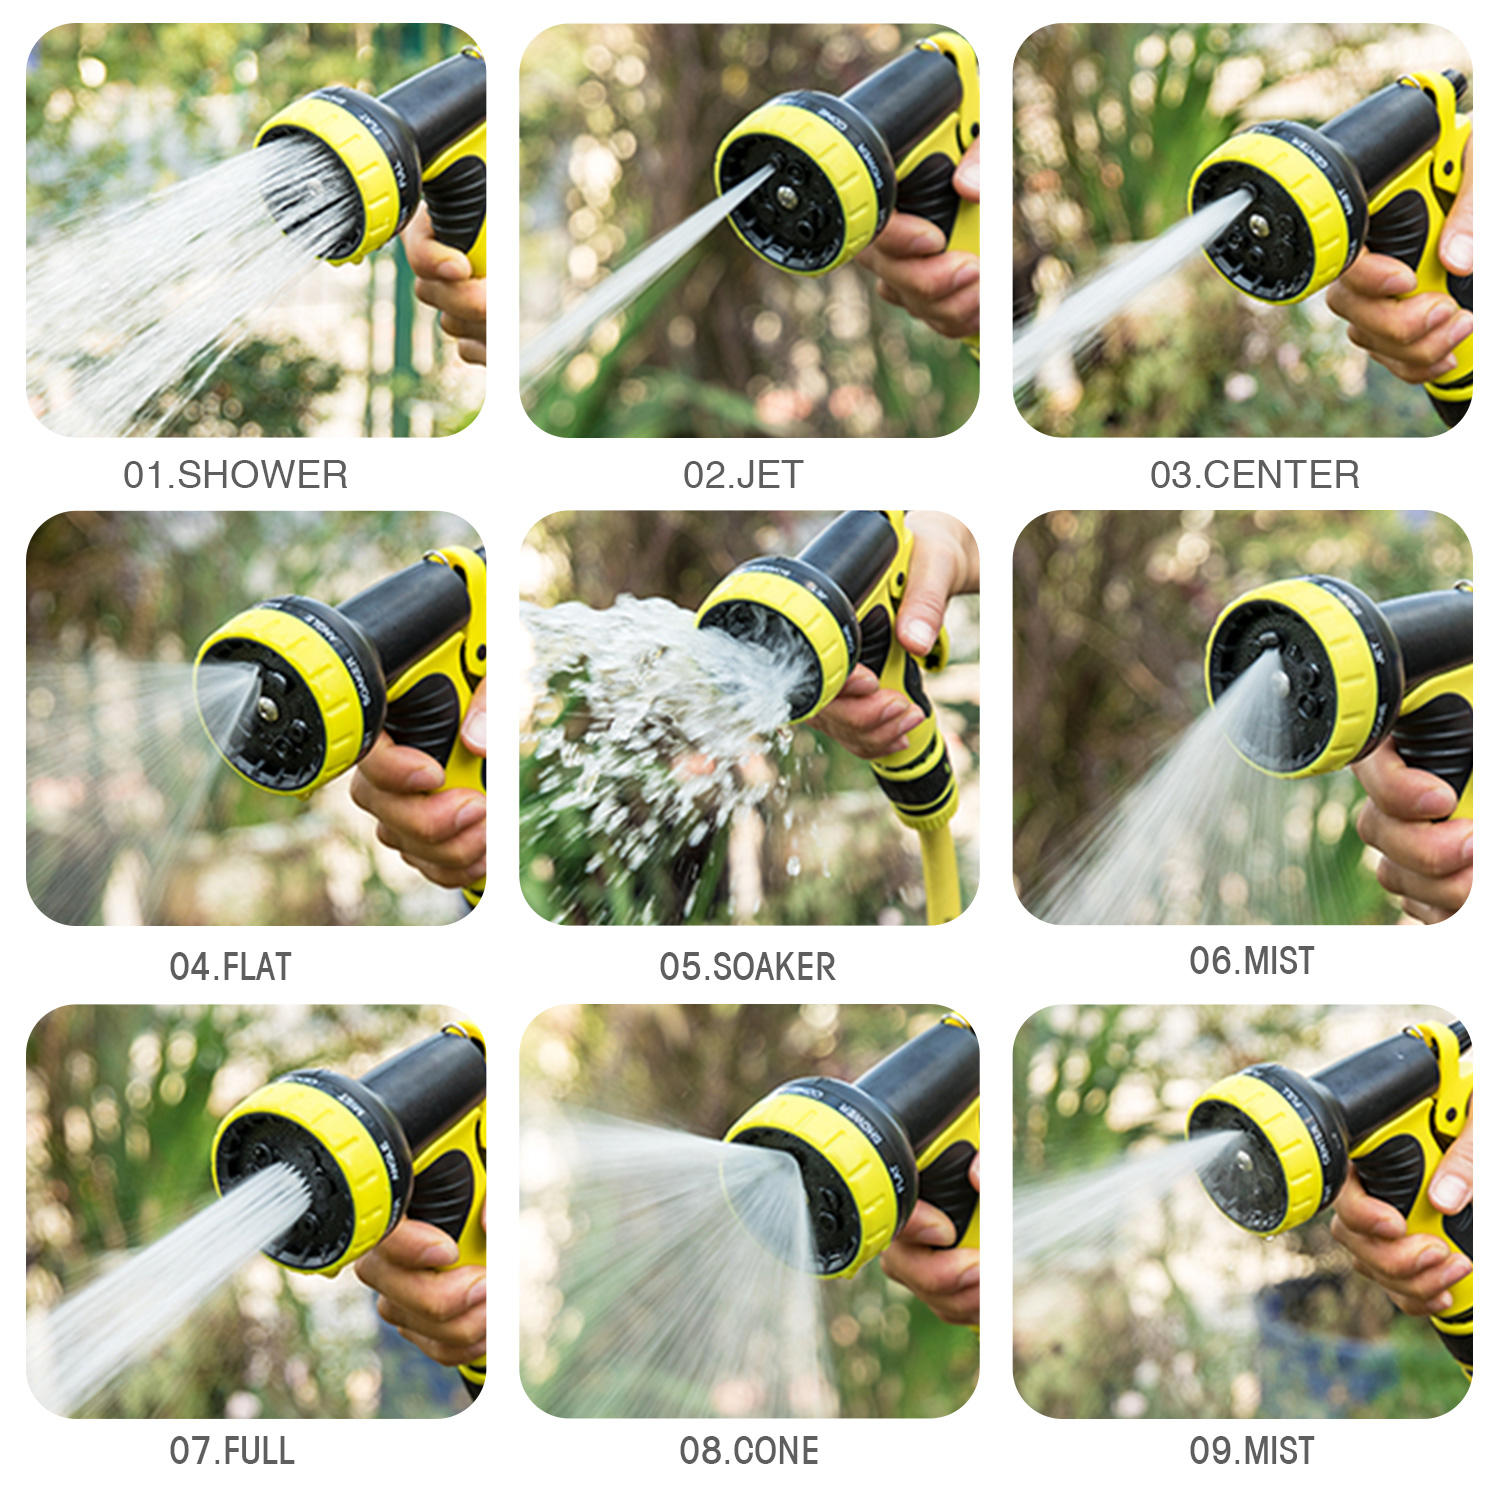 Expandable Water Garden Hose 2021New Design Expandable Garden Hose Easy Operation Garden Water Pipe Hose With 8 Function Spray Nozzle